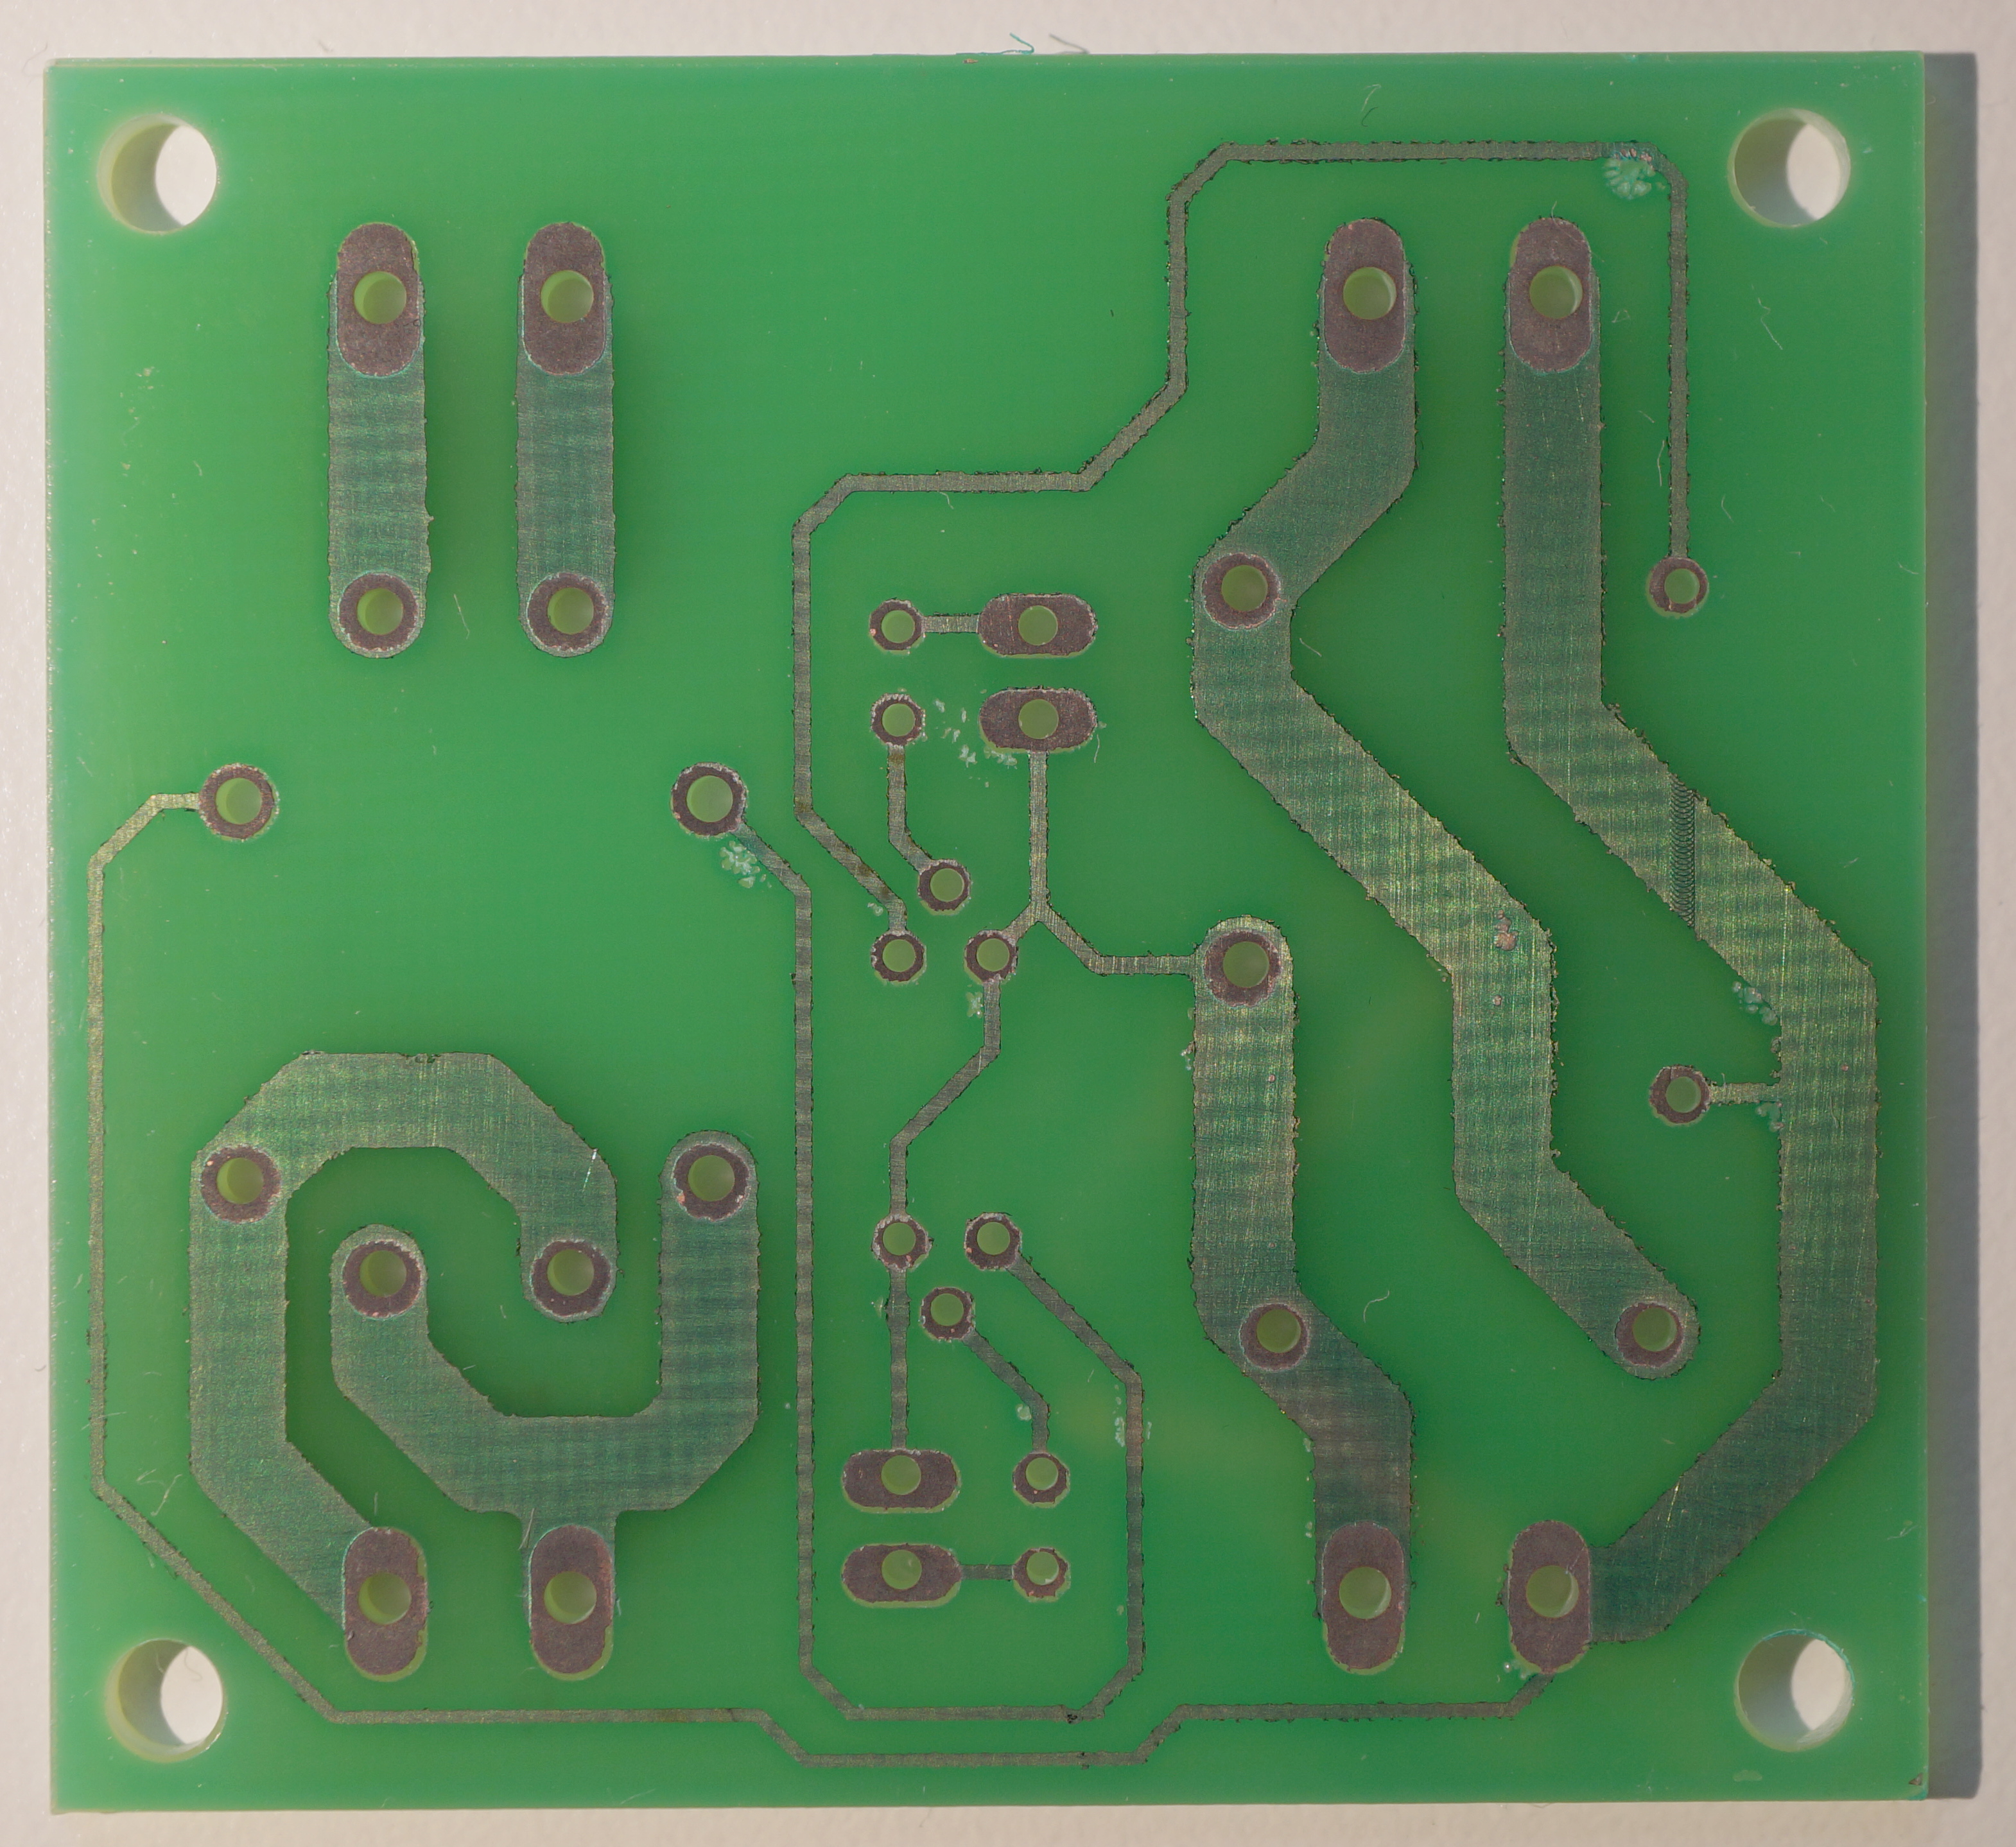 Producing PCBs using photolithography — whitequark's lab